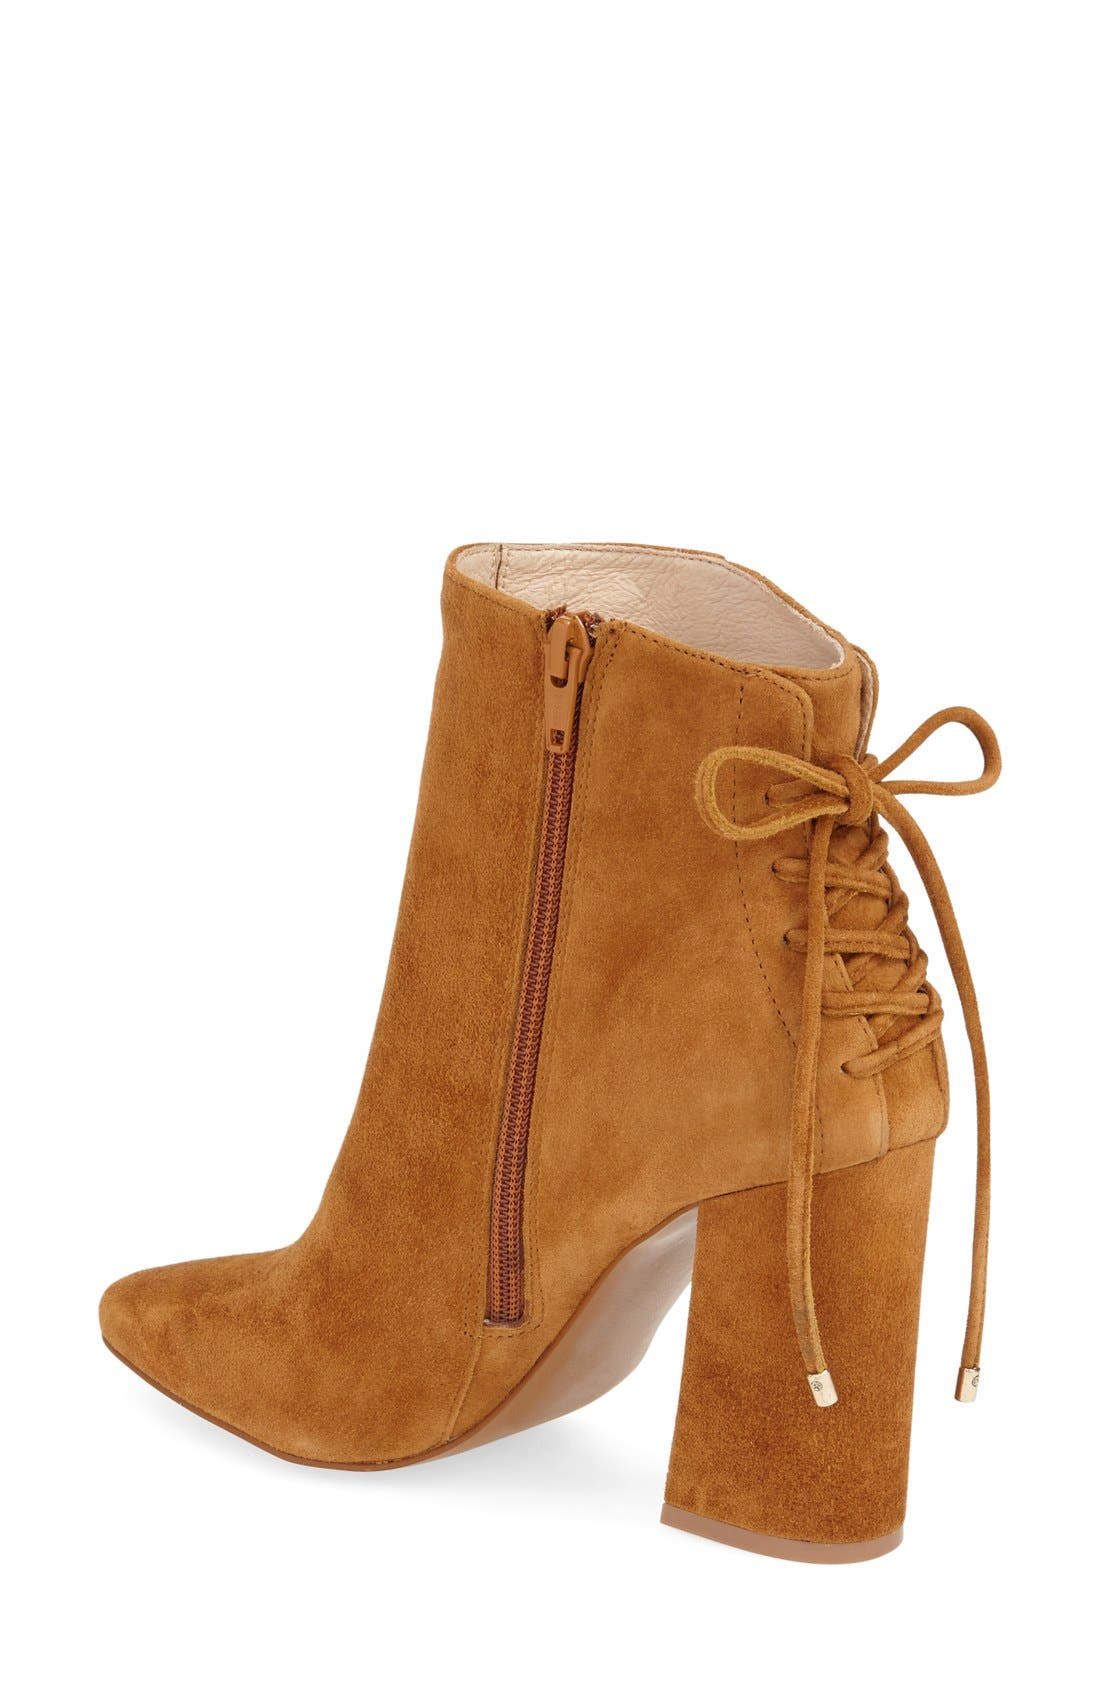 'Siren' Pointy Toe Bootie,                             Alternate thumbnail 2, color,                             Caramel Suede